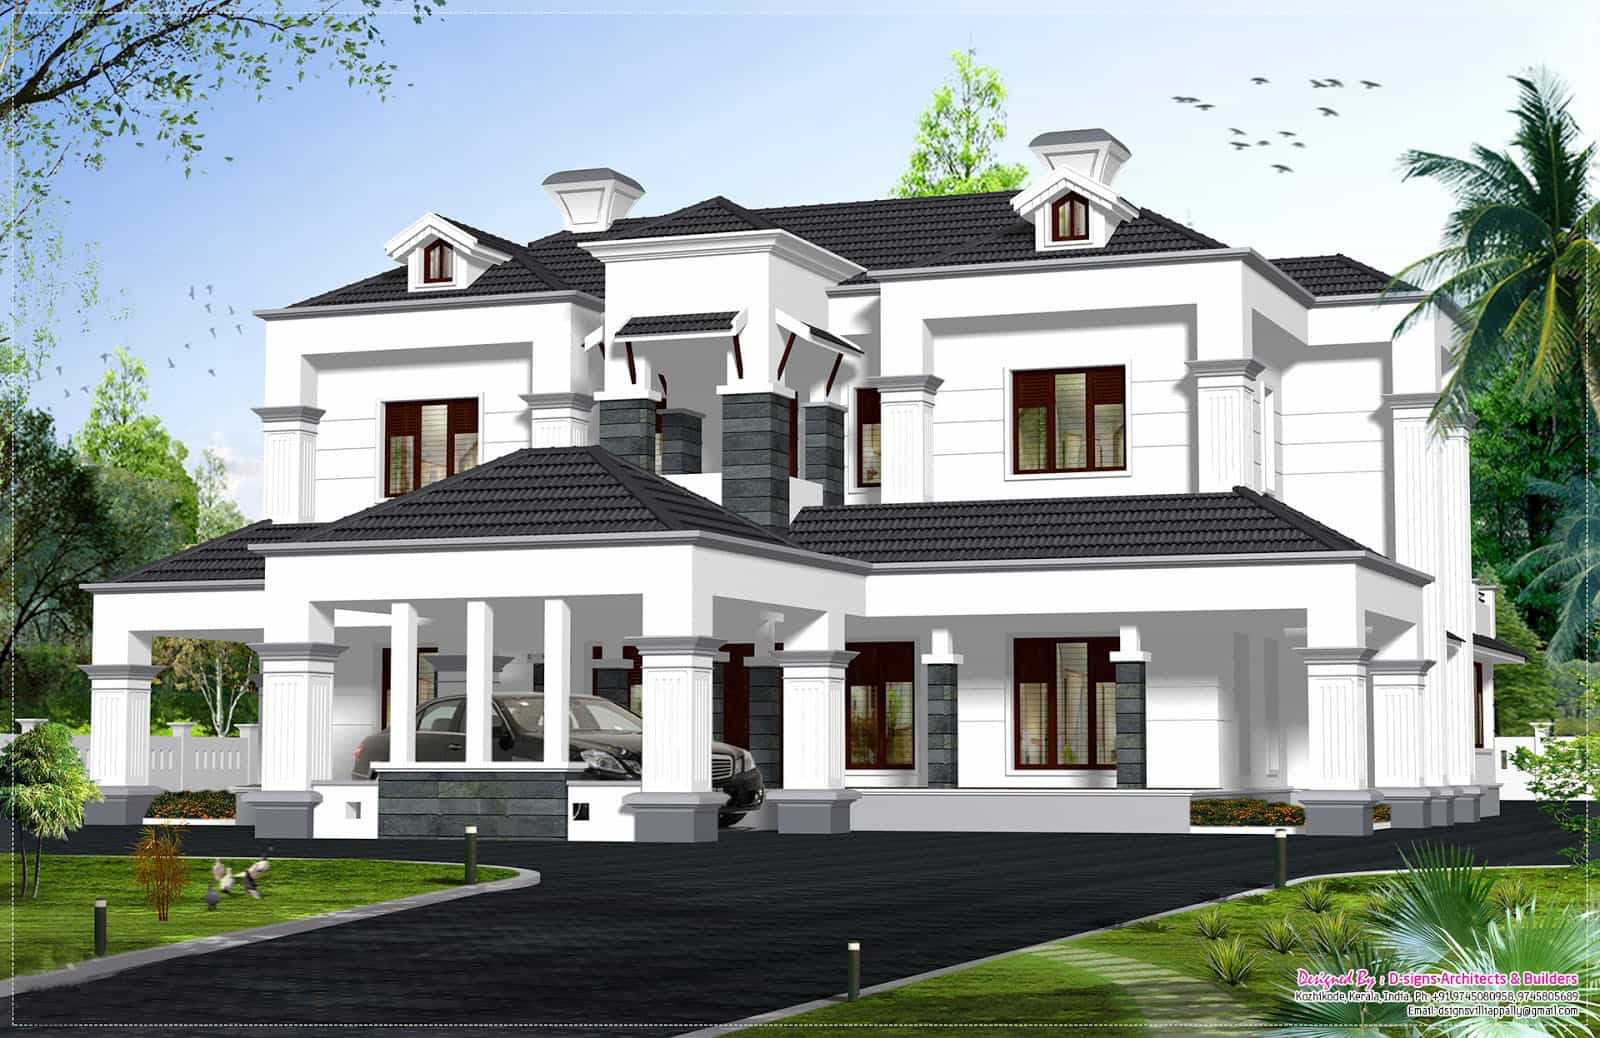 Kerala House Plans   KeralaHousePlannerVictorian Style Kerala house model at sq ft